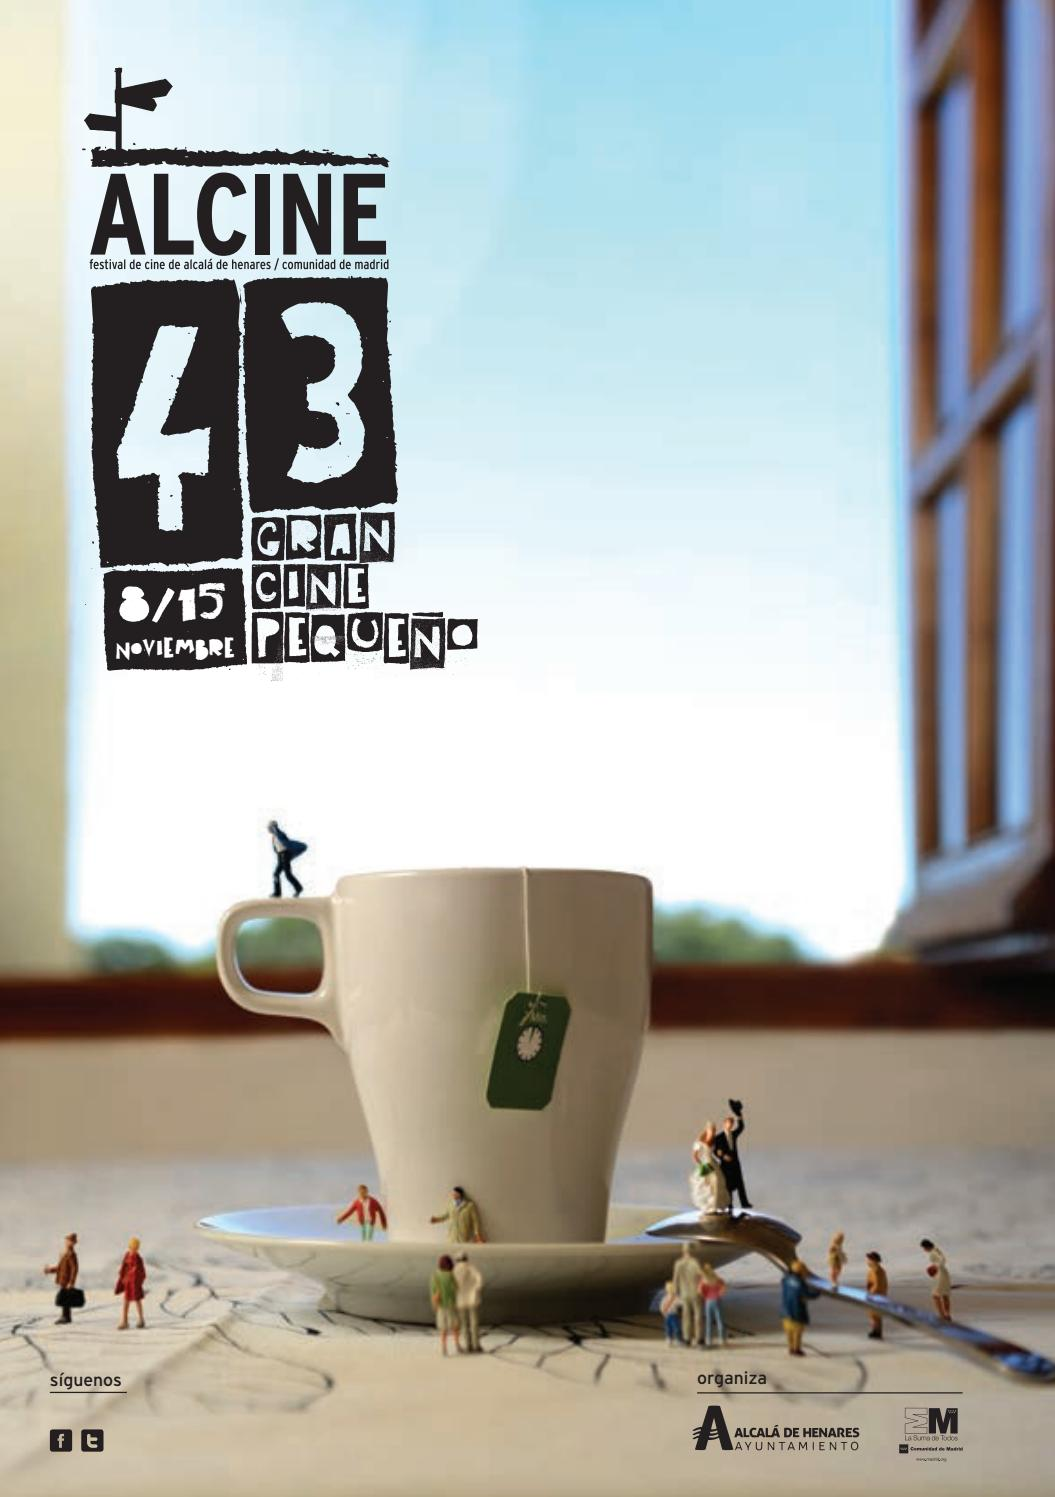 Catalogo Alcine43 By Luis G Issuu